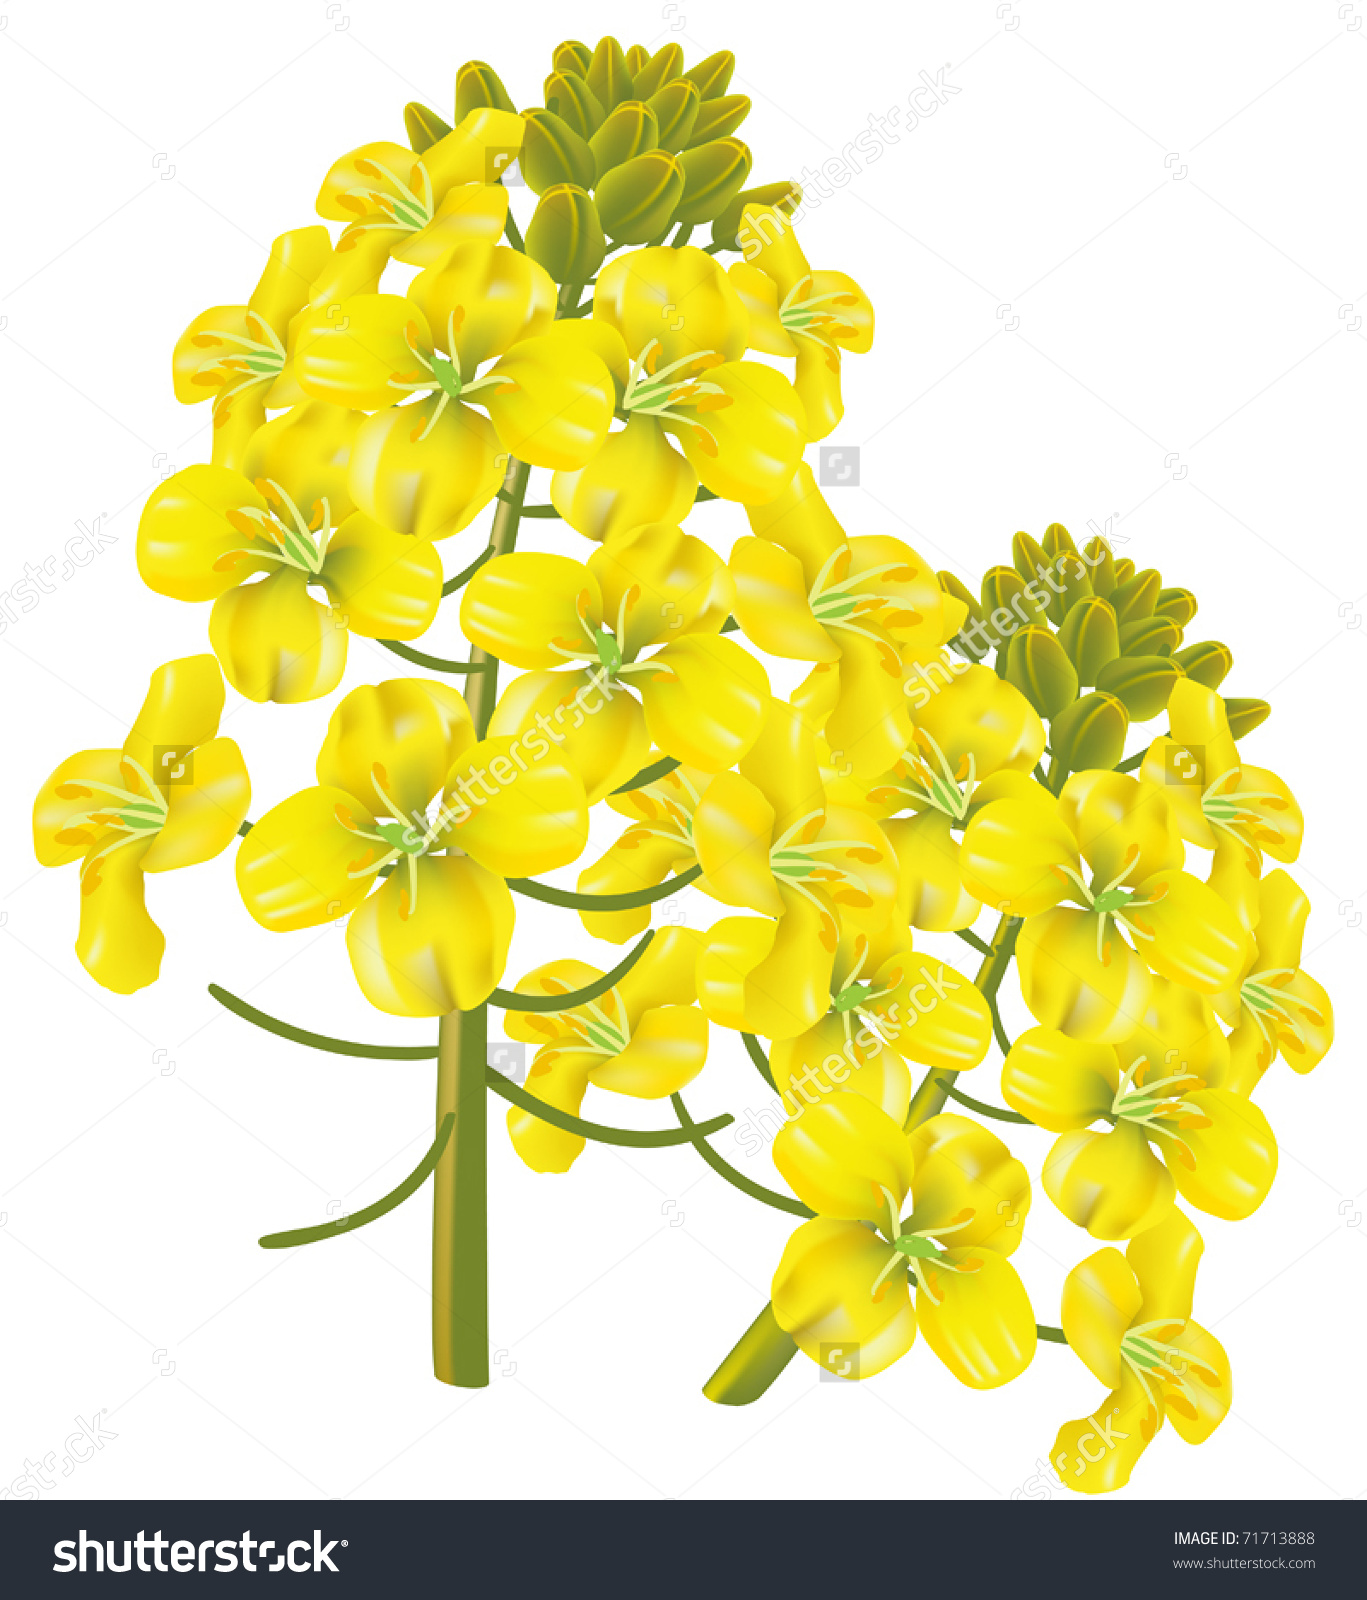 Rapeseed Flower Brassica Napus Vector Illustration Stock Vector.